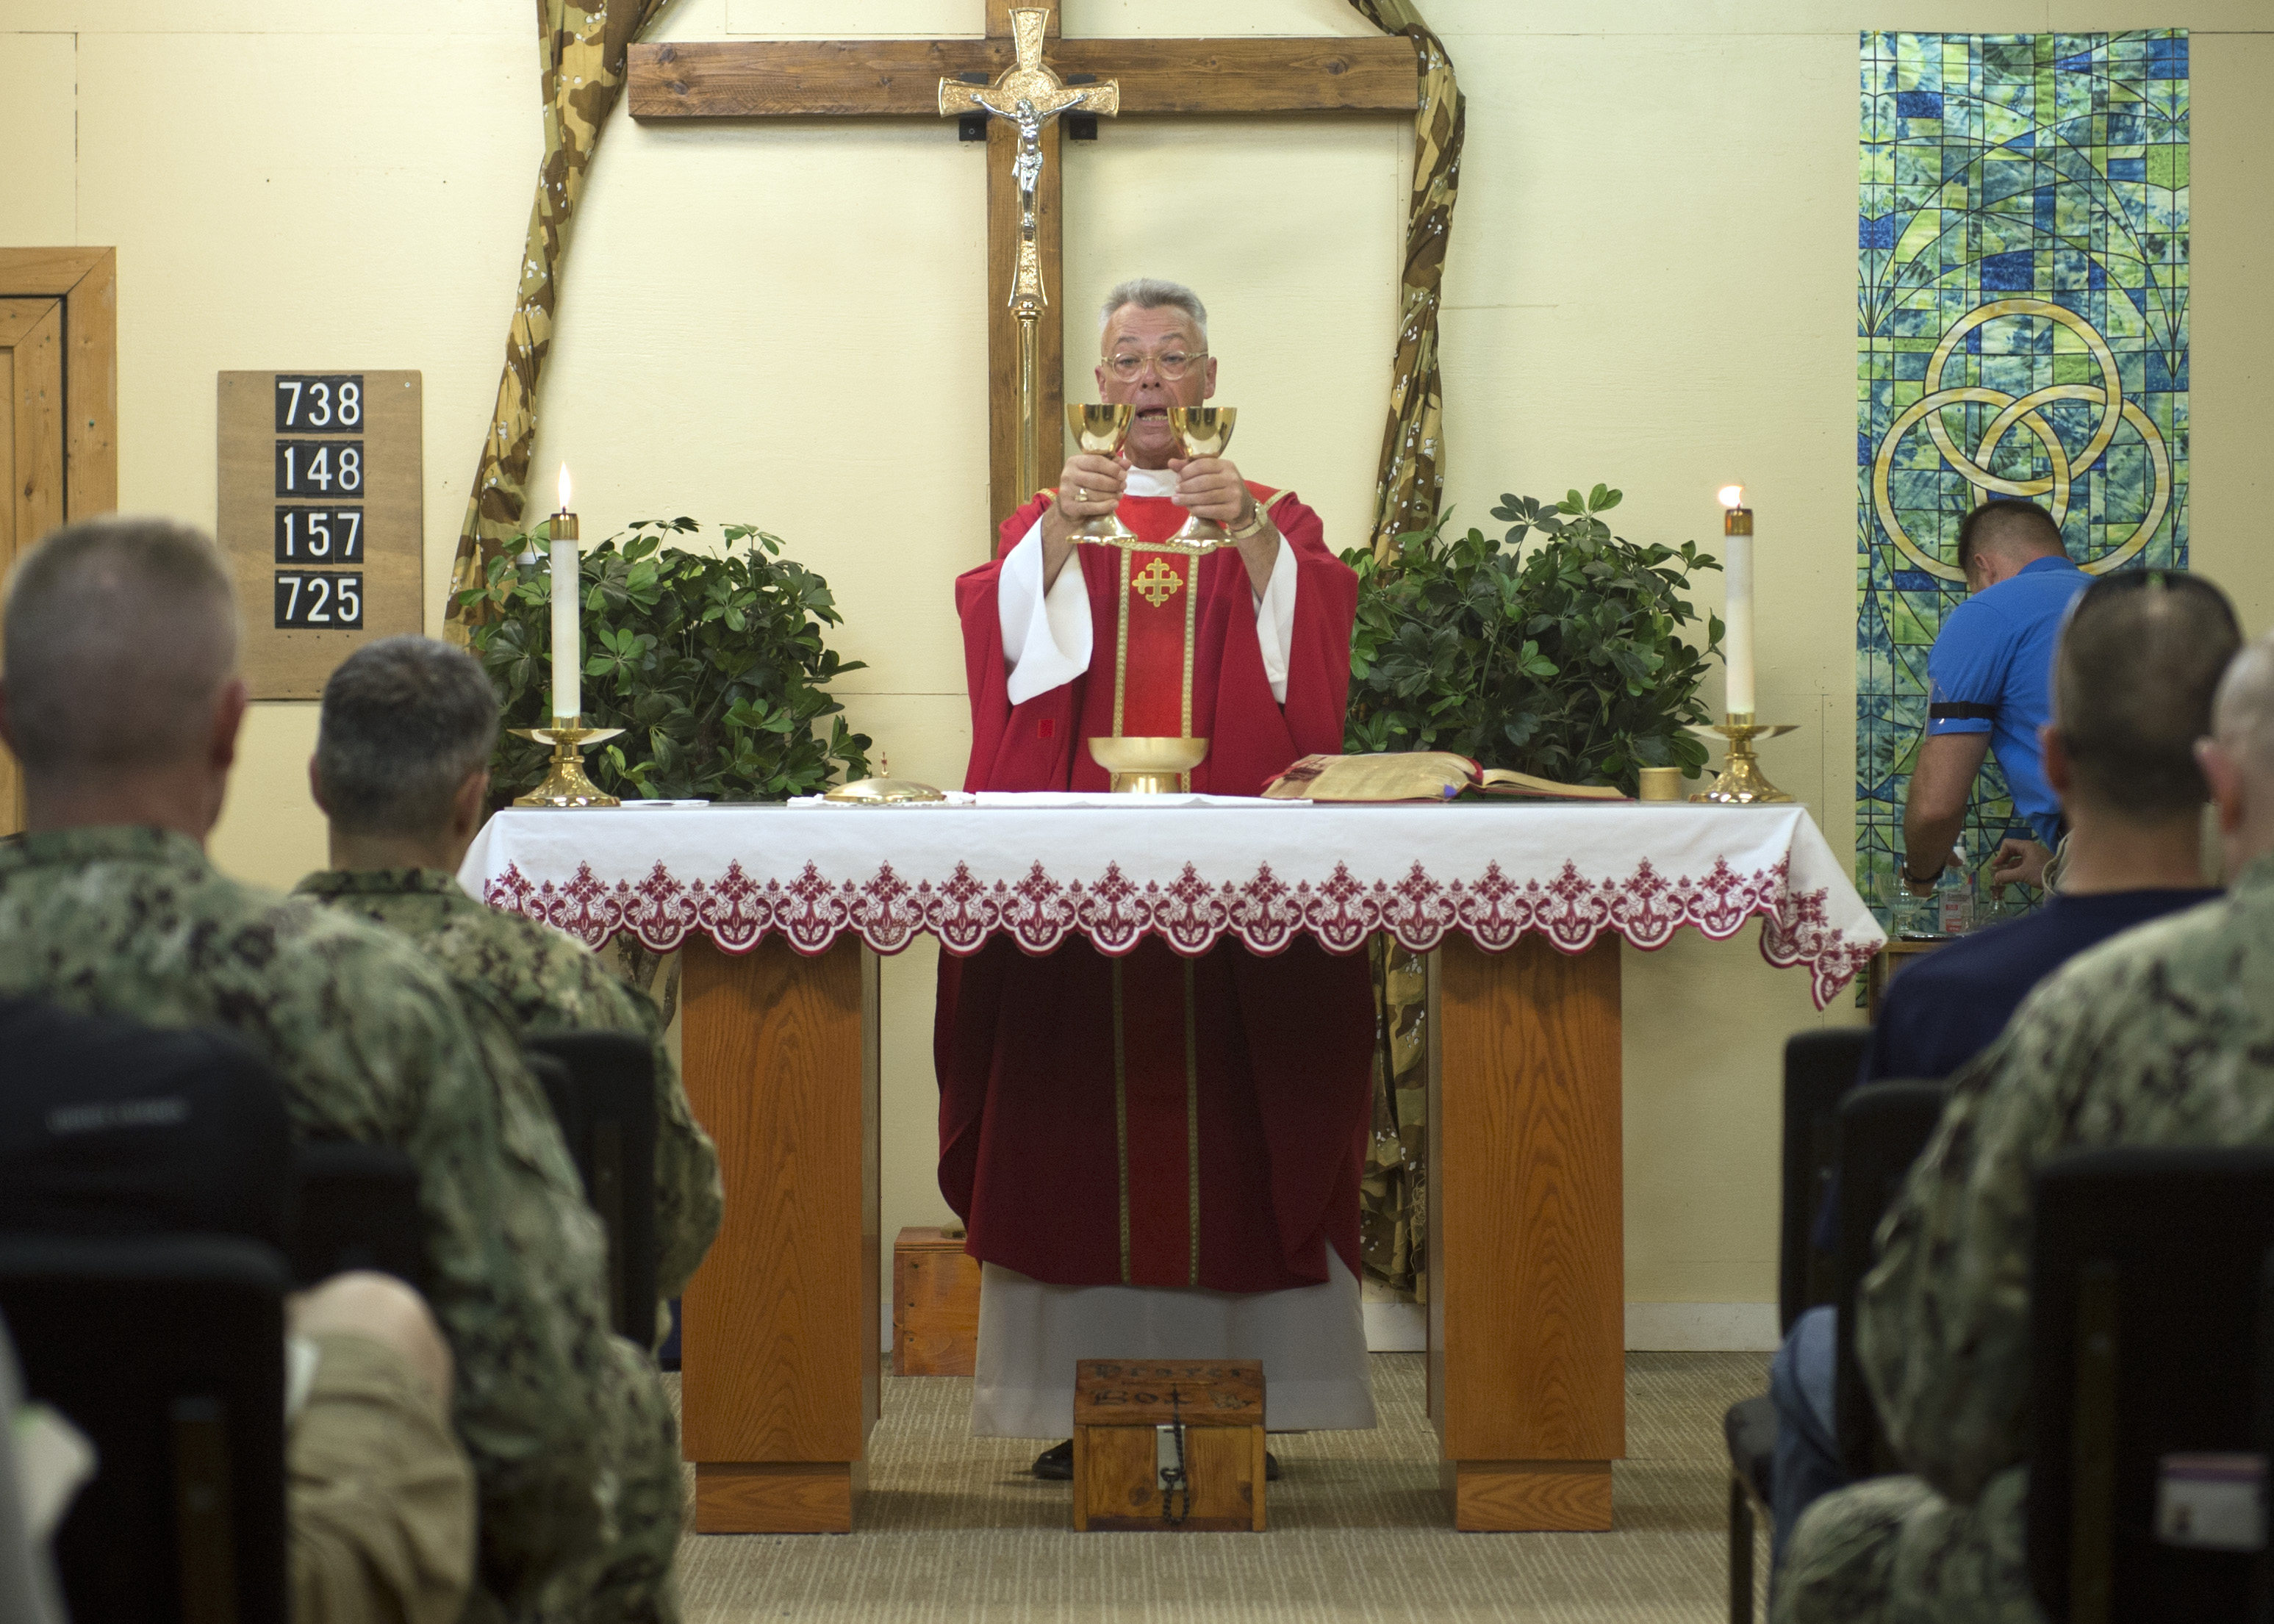 U.S. Navy Chaplain Capt. Sean O'Brien raises chalices as part of a consecration ritual during Catholic mass at Camp Lemonnier, Djibouti, Mar. 28, 2015. The Chaplain's priorities are to enhance Airmen's readiness by preparing them with spiritual resiliency, engaging them through ministry of presence and spiritual care and ensuring worship and religious education opportunities are available to all. (U.S. Air Force photo by Staff Sgt. Kevin Iinuma)